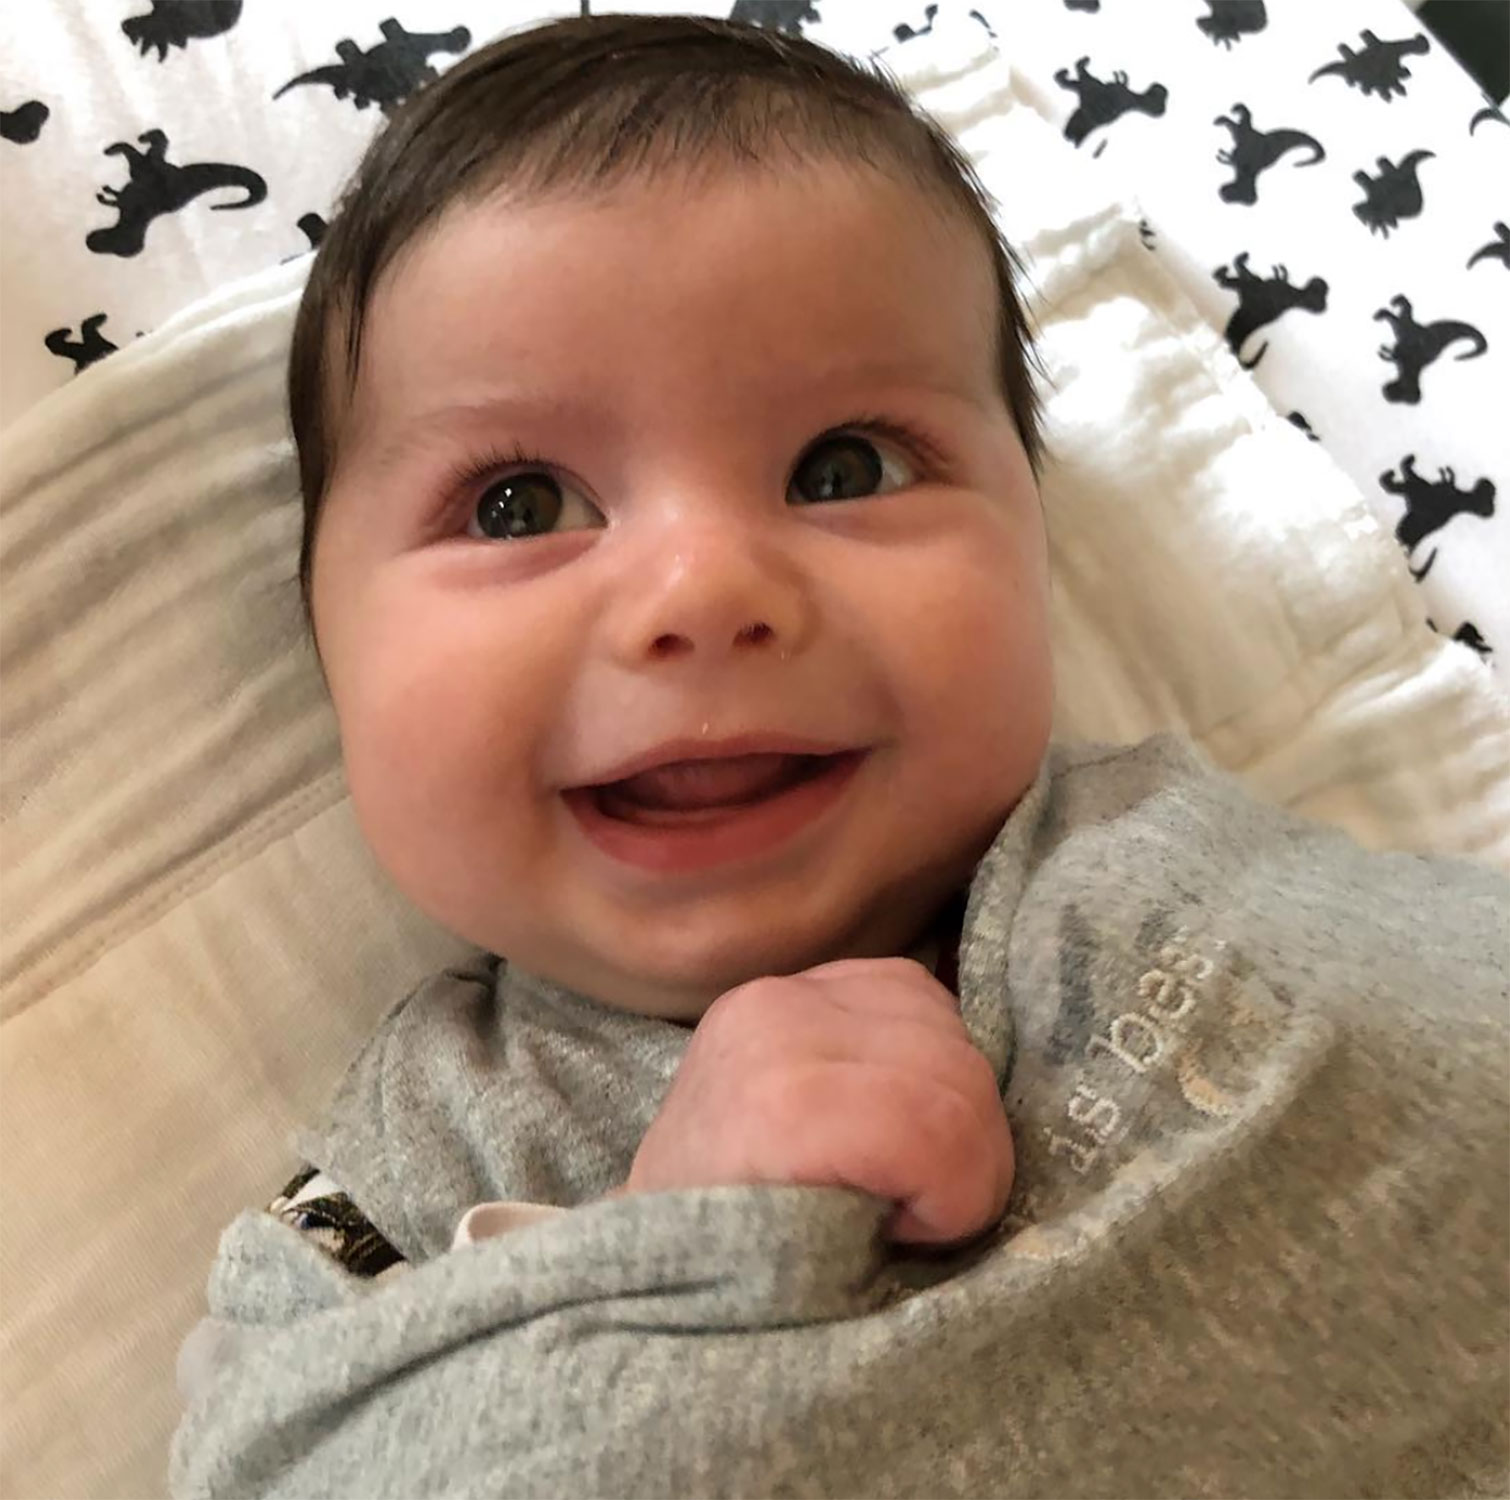 Andy Cohen's baby